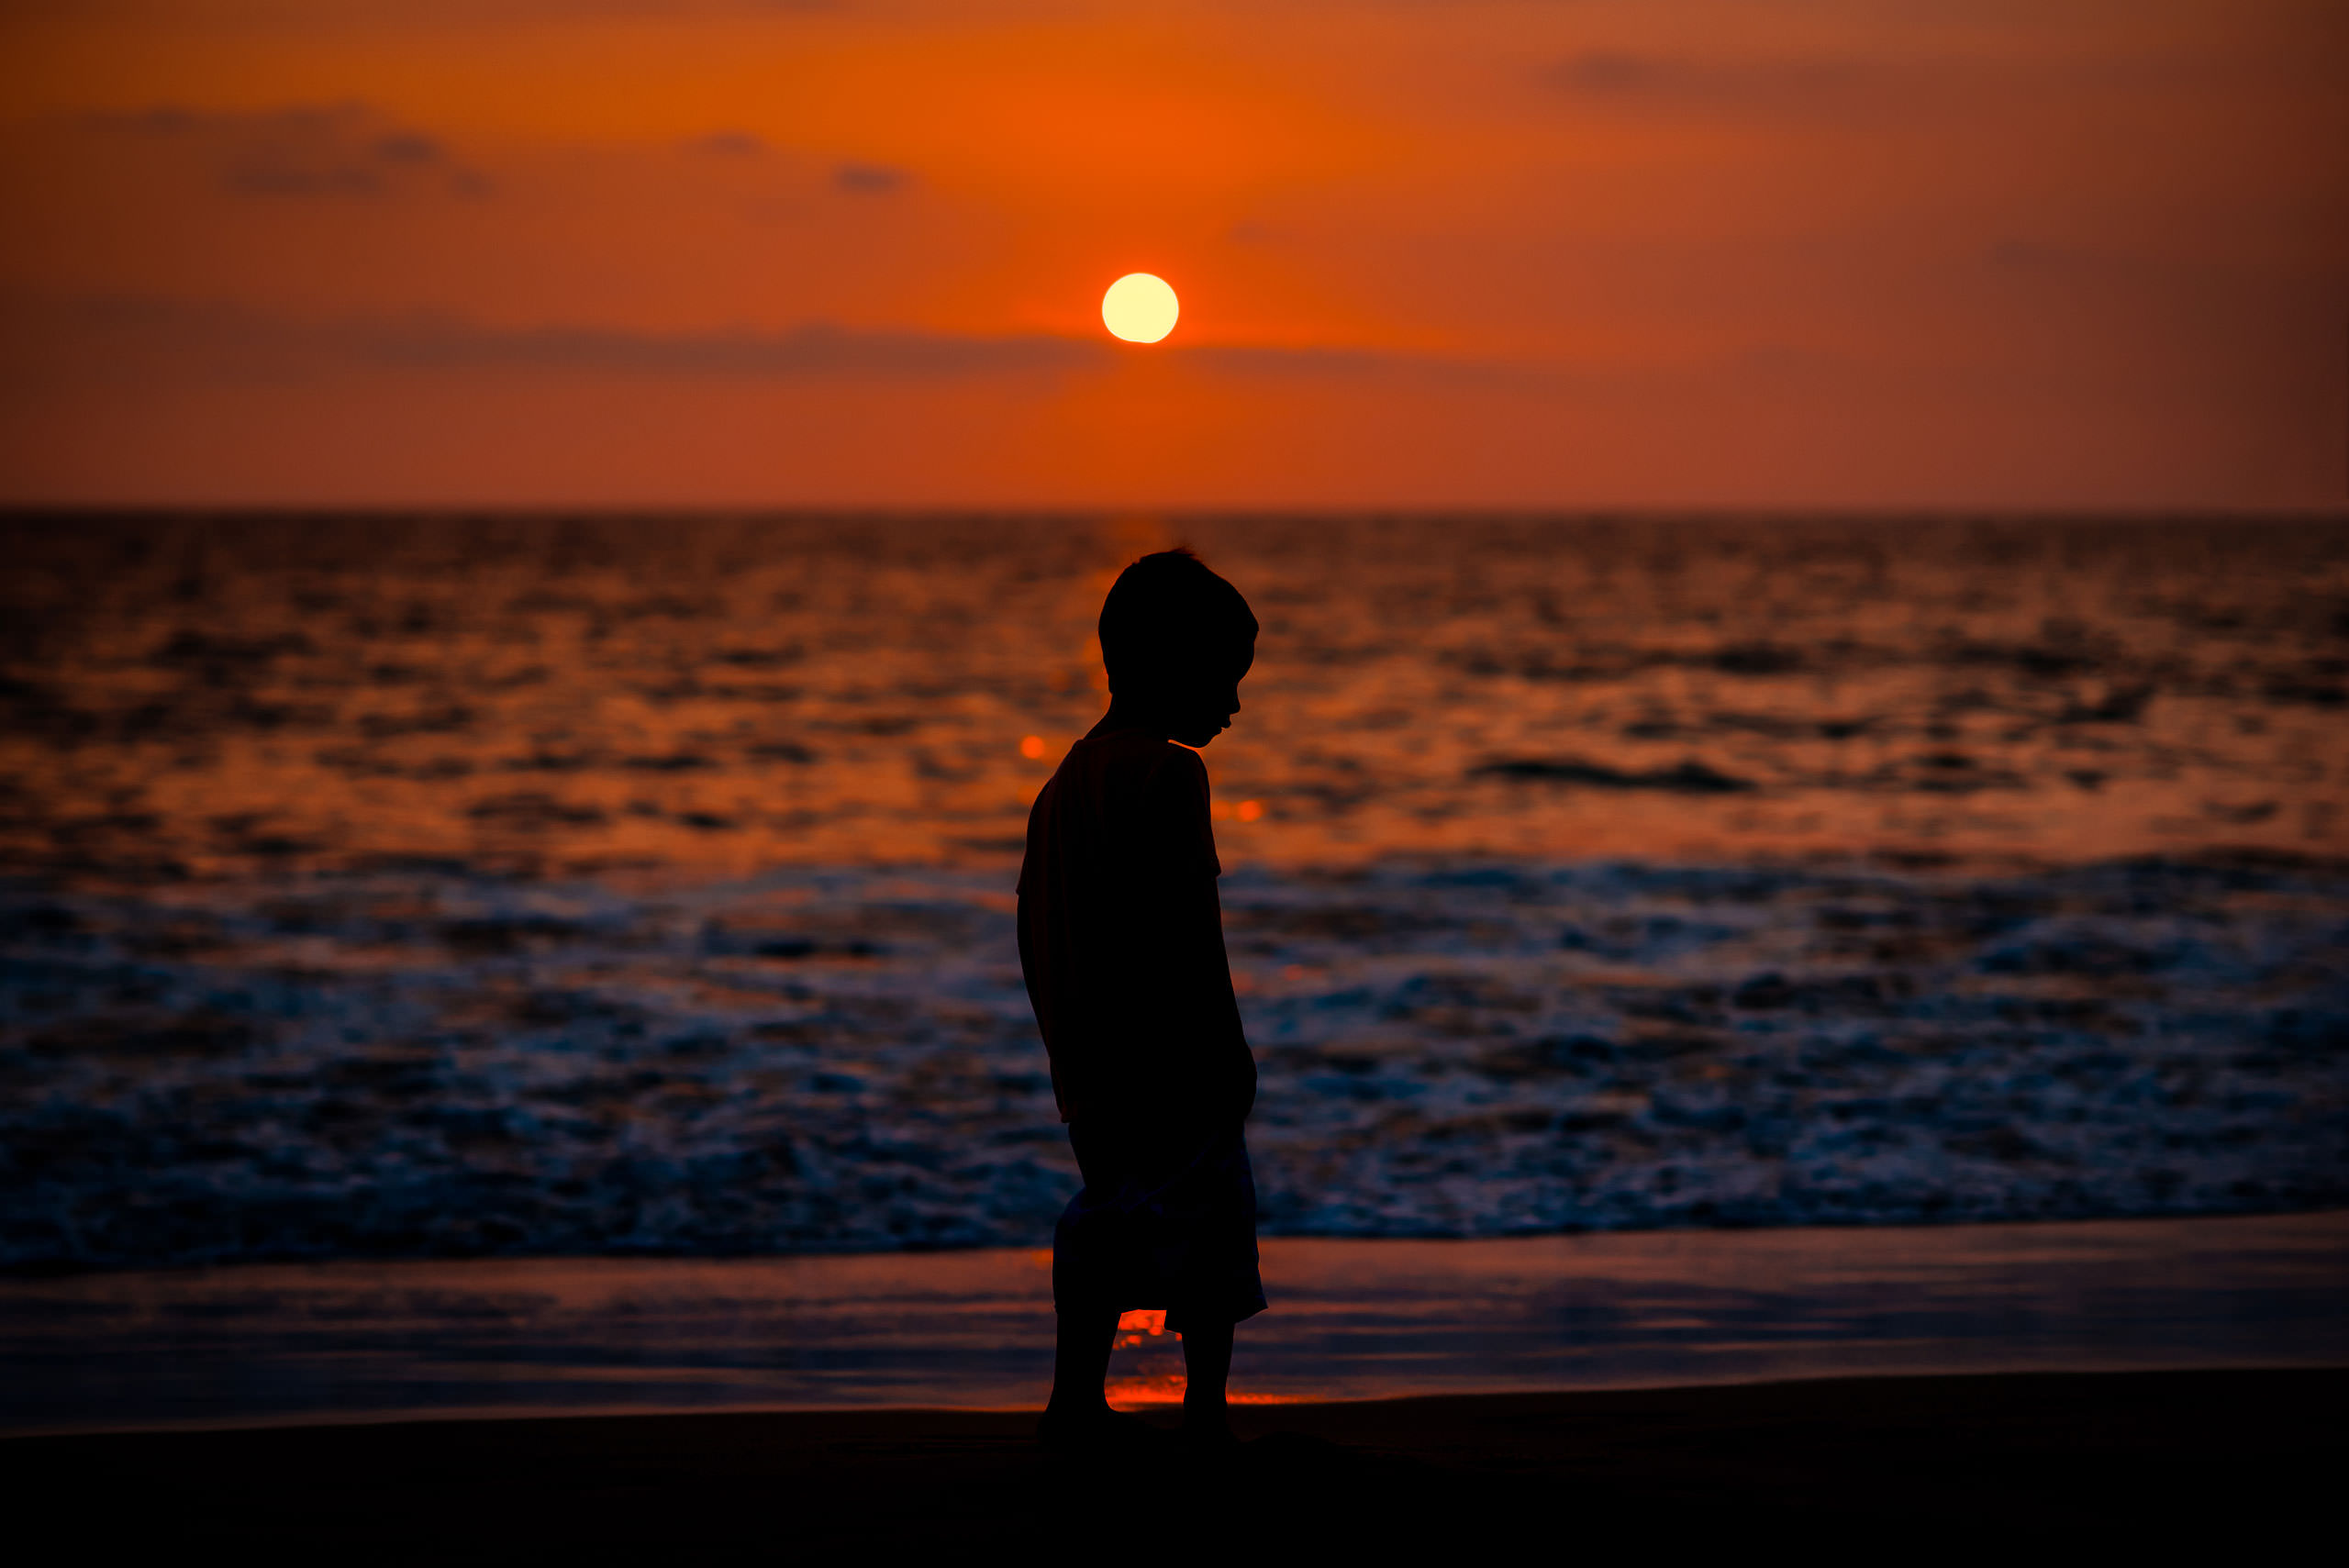 young boy on a Hawaiian beach at sunset silhouetted against the ocean - destination family photographers